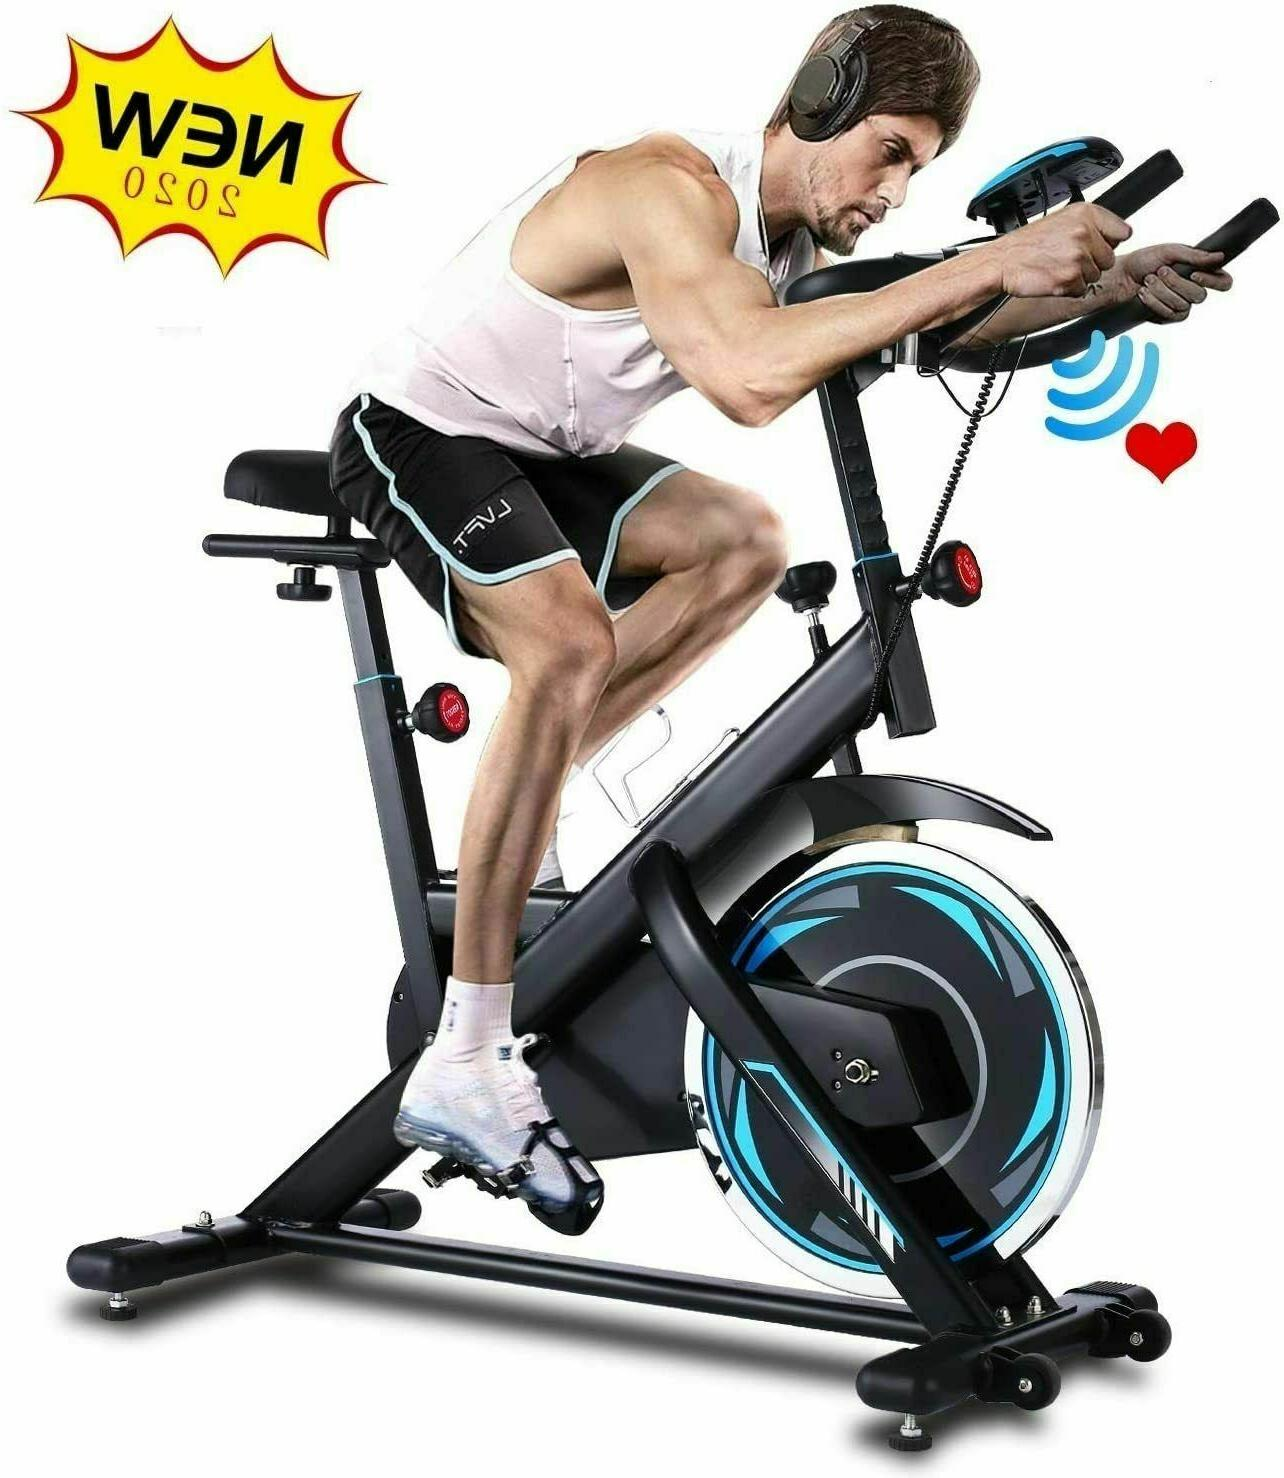 ANCHEER Indoor Exercise Stationary, Cycling w/ Rate